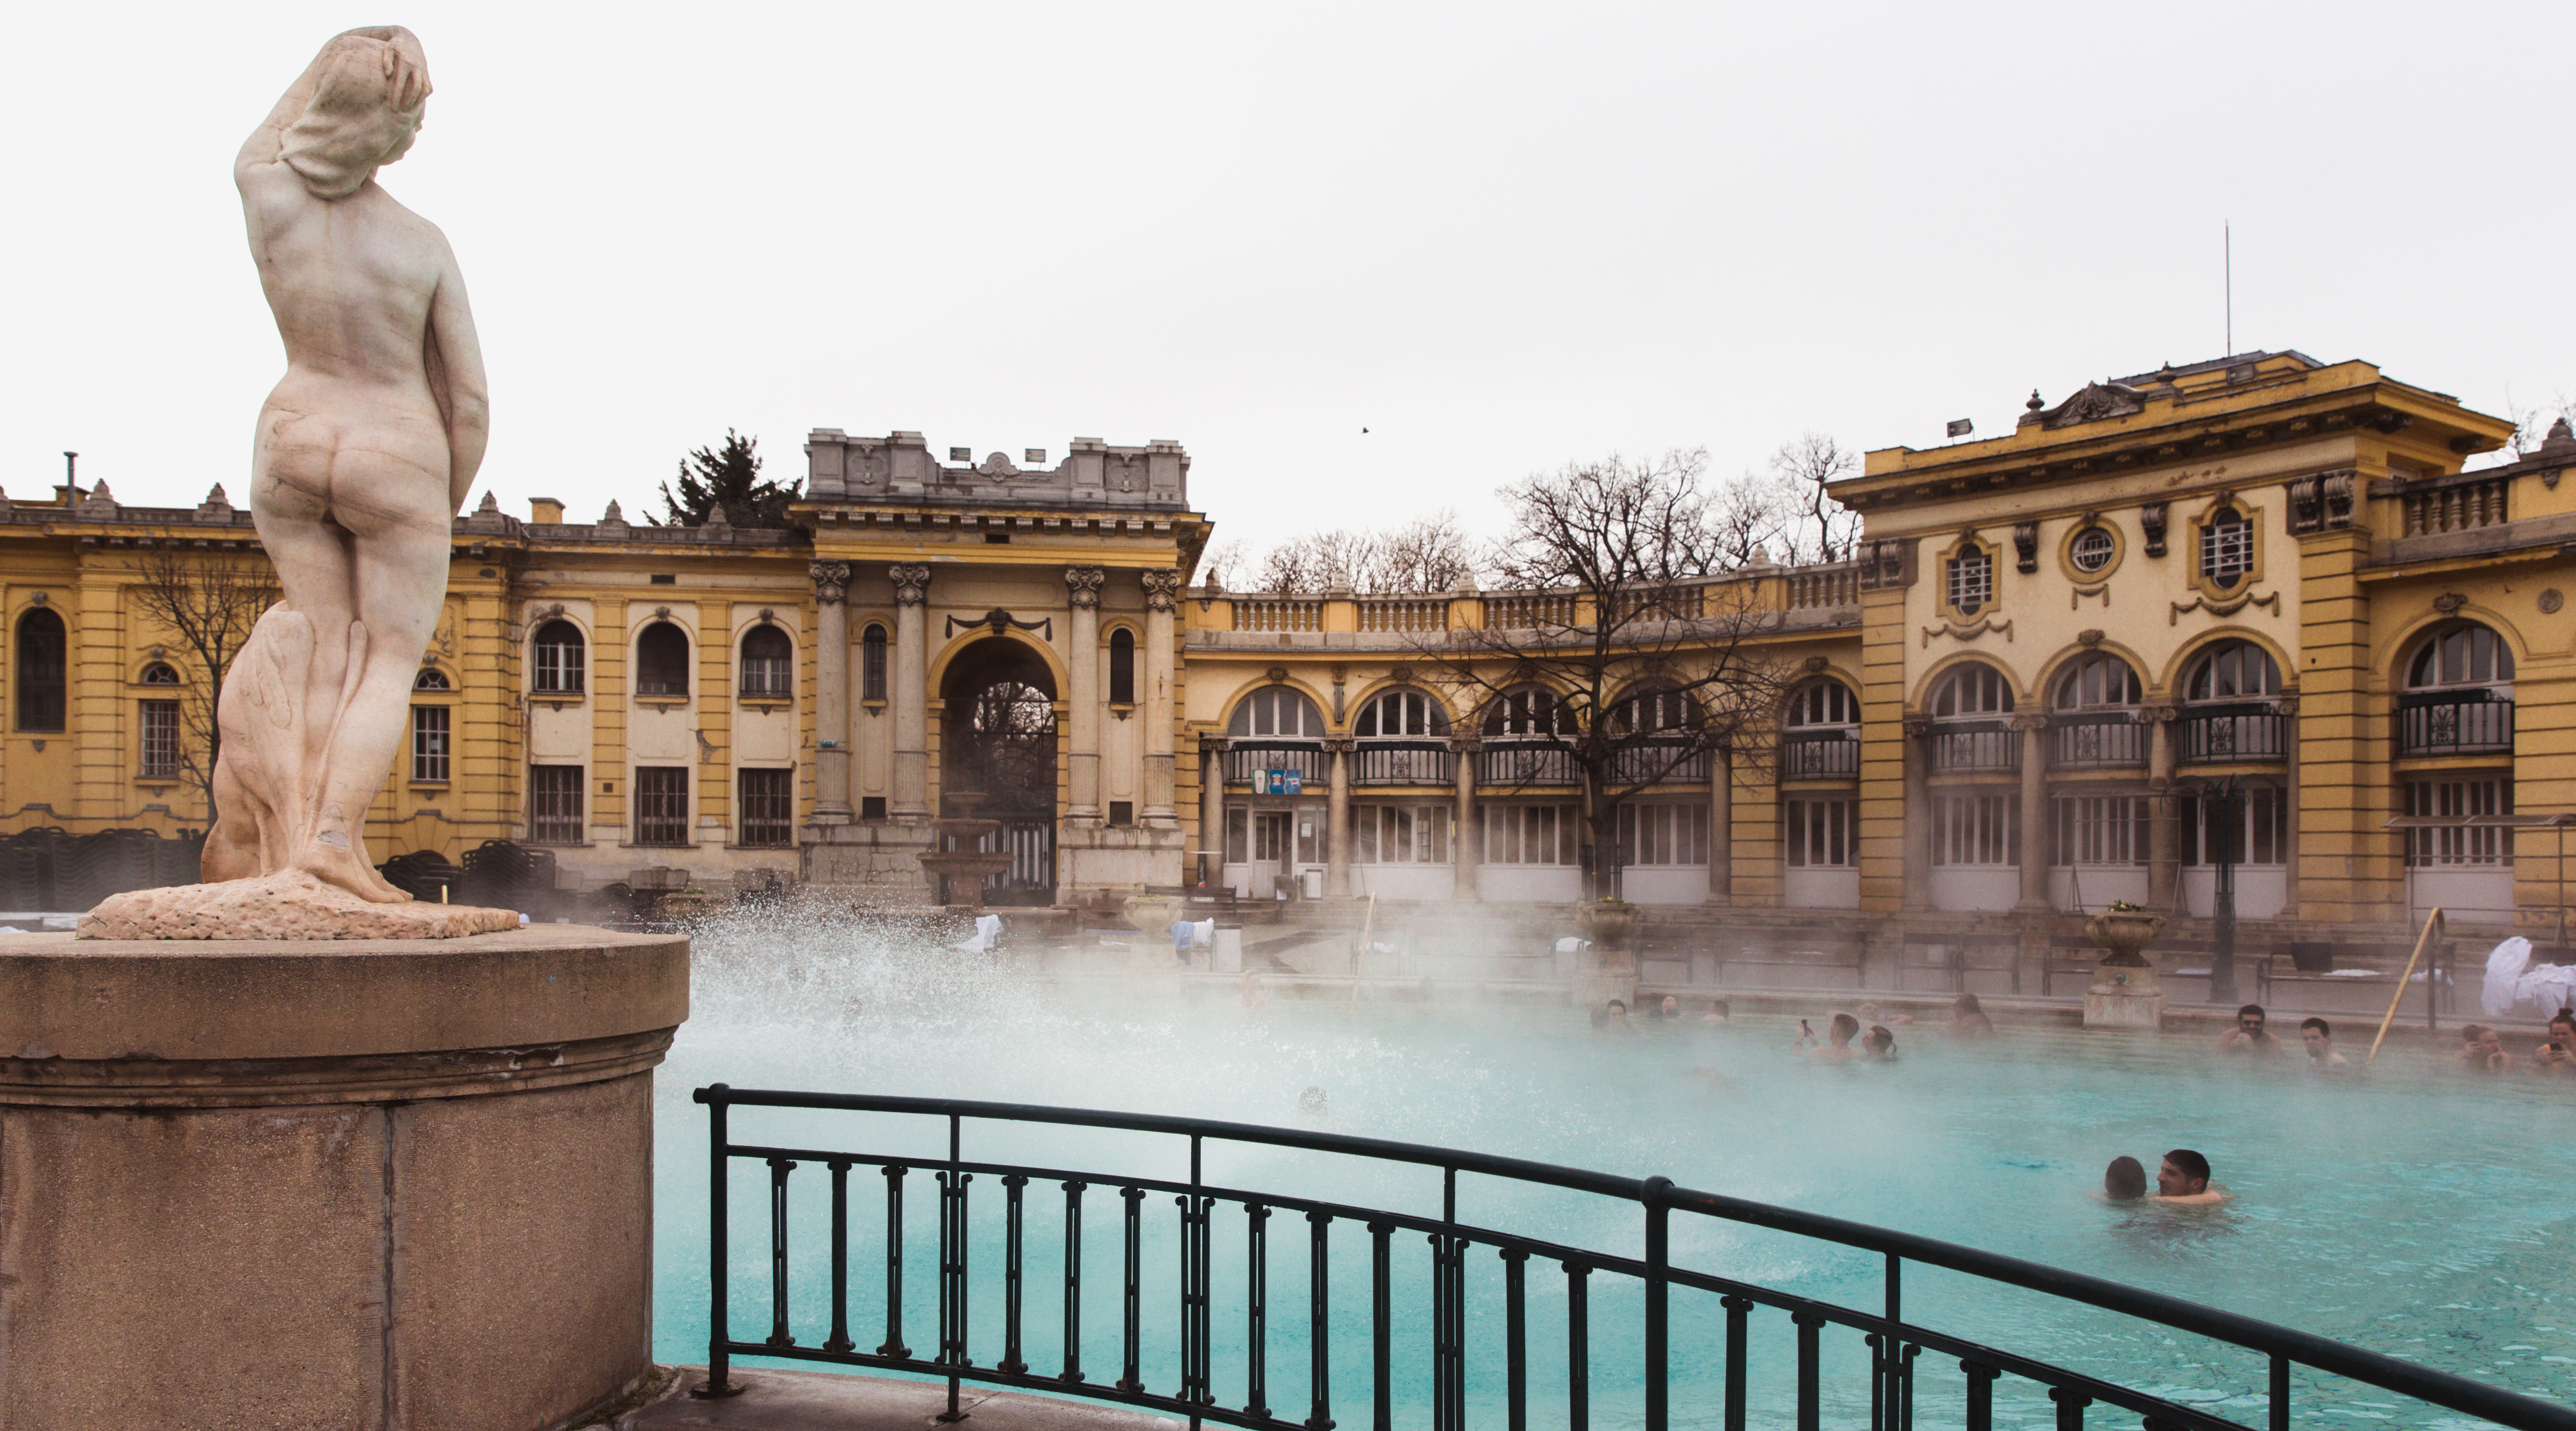 BUDAPEST, HUNGARY - January 24, 2019: The Szechenyi thermal bath, the largest medicinal bath in Europe